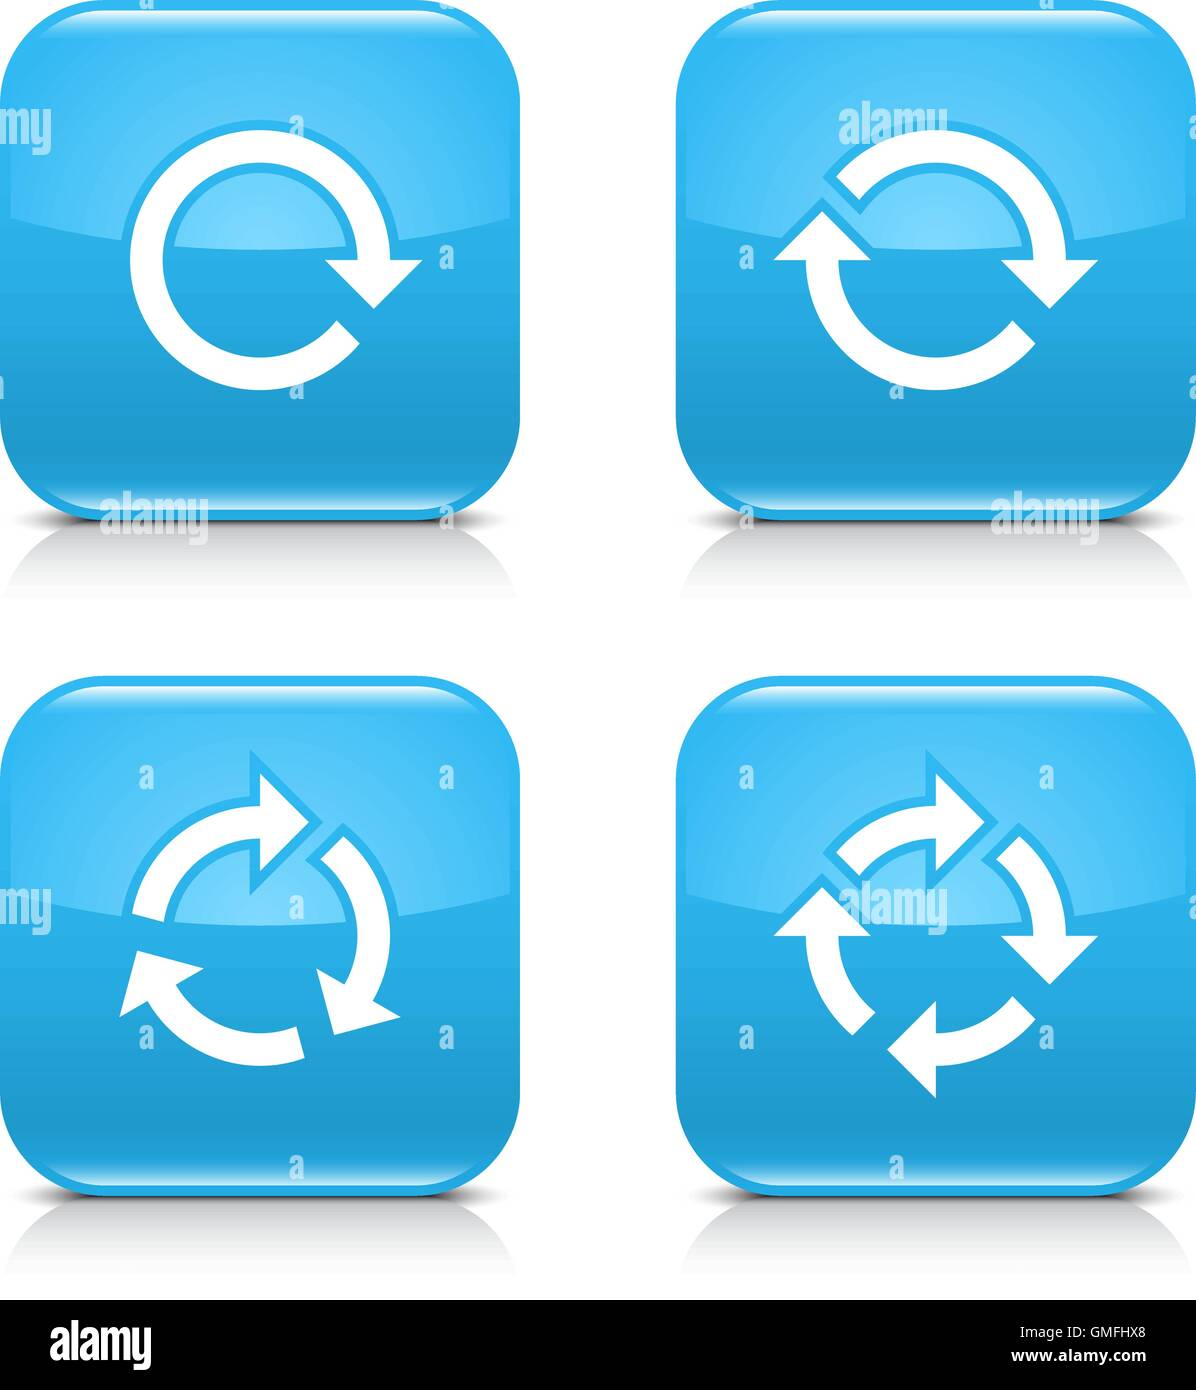 4 arrow icon. White repeat, reload, refresh, rotation sign. Set 02. Blue rounded square button with gray reflection - Stock Image